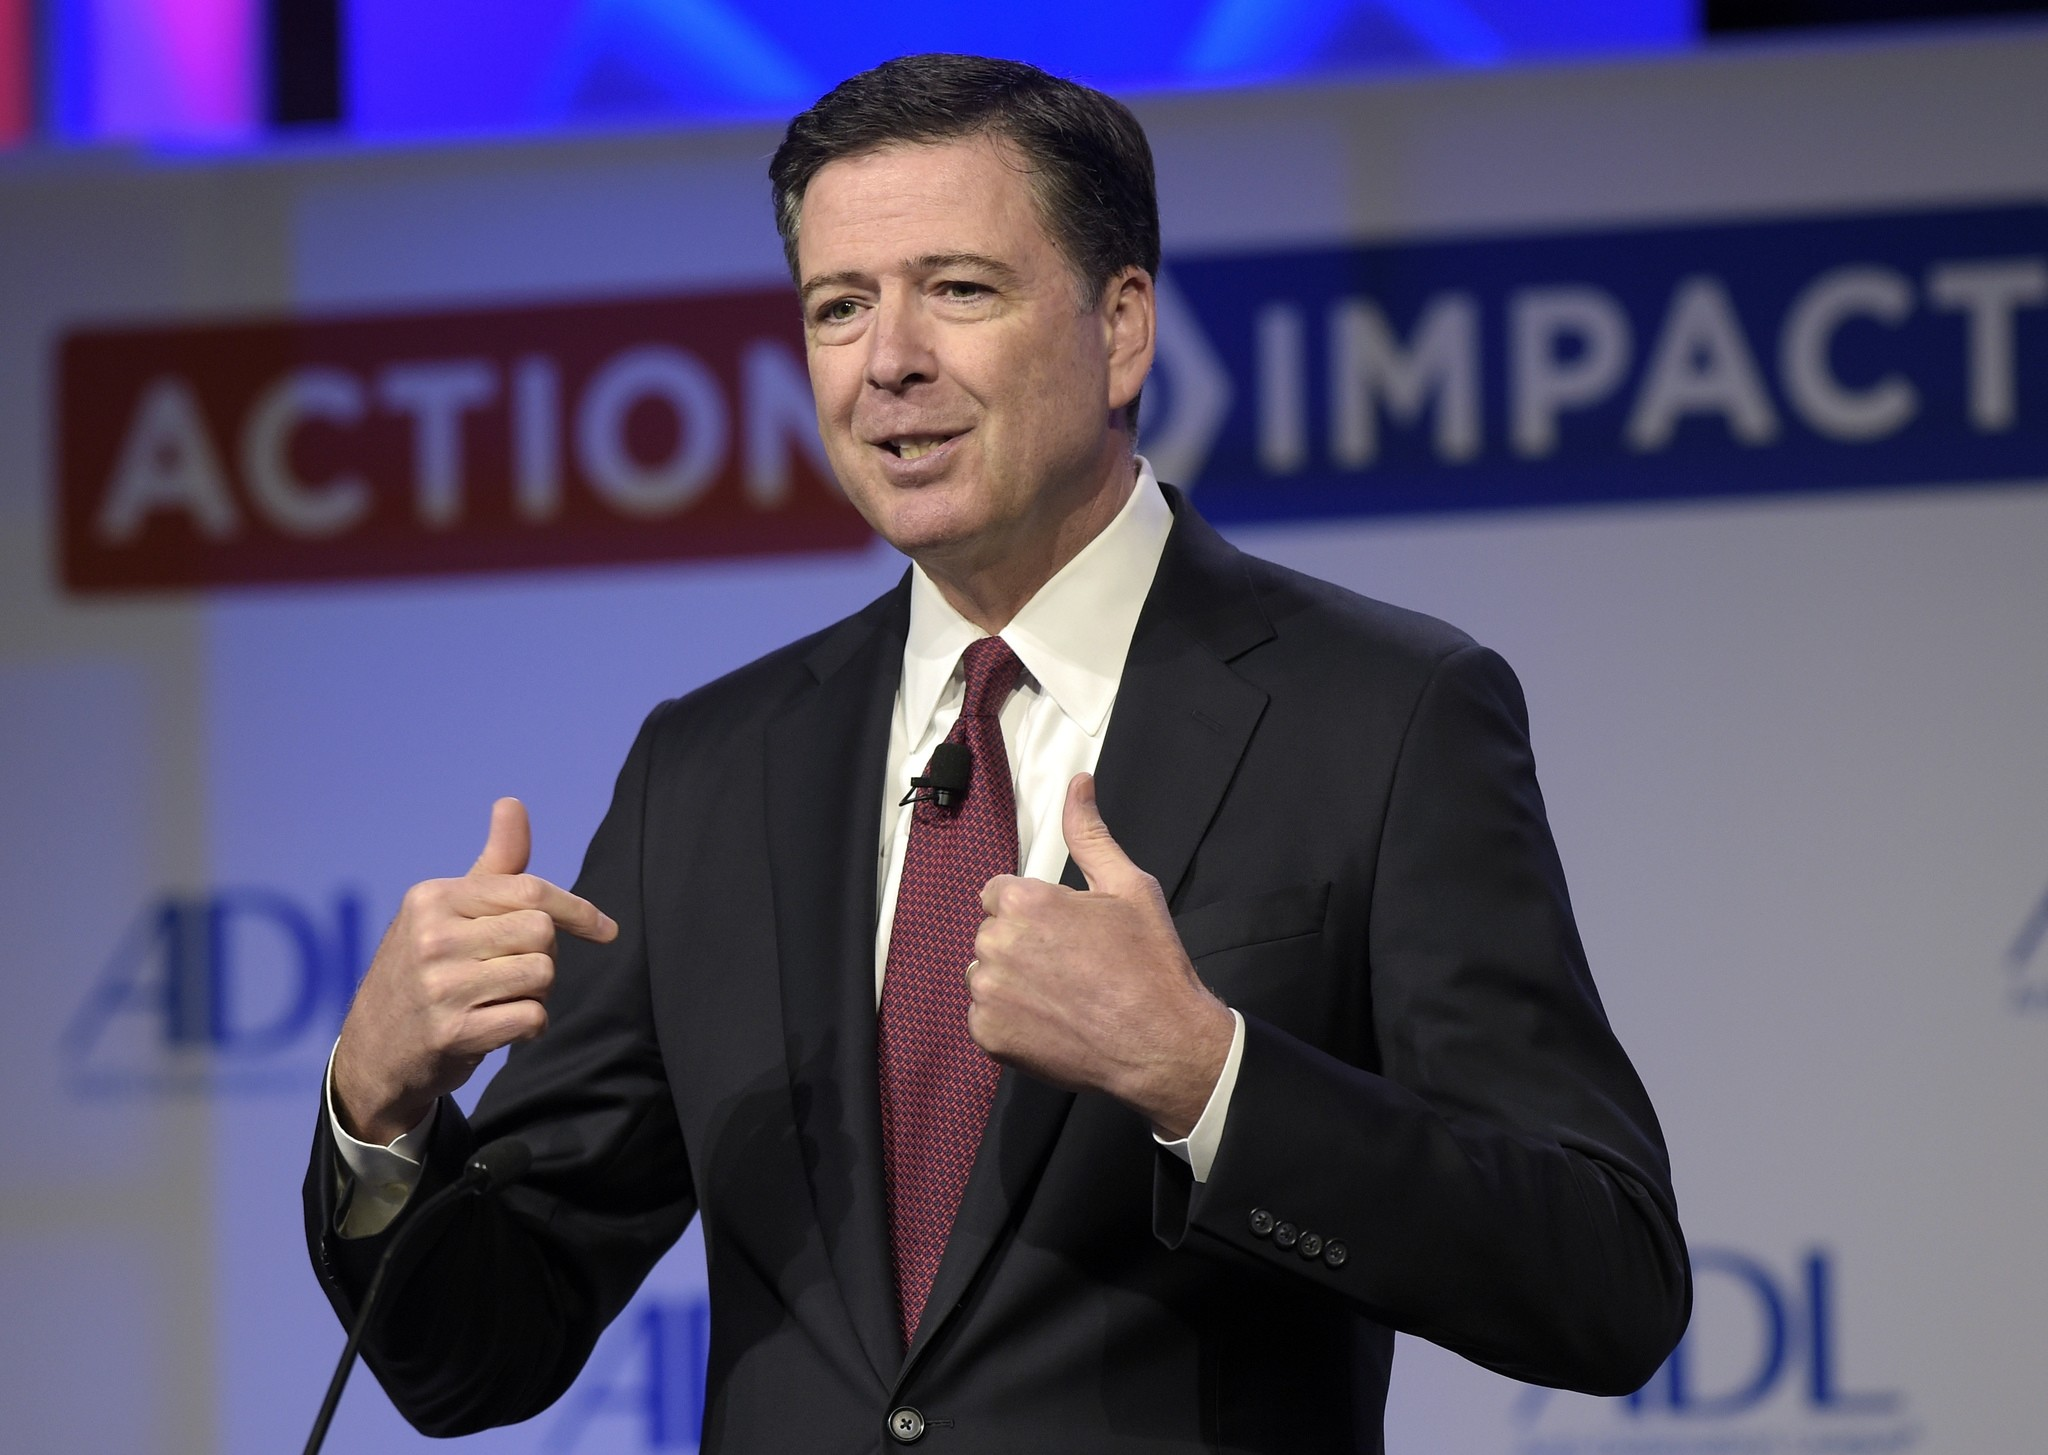 In this May 8, 2017, file photo, then-FBI Director James Comey speaks to the Anti-Defamation League National Leadership Summit in Washington. (AP Photo)